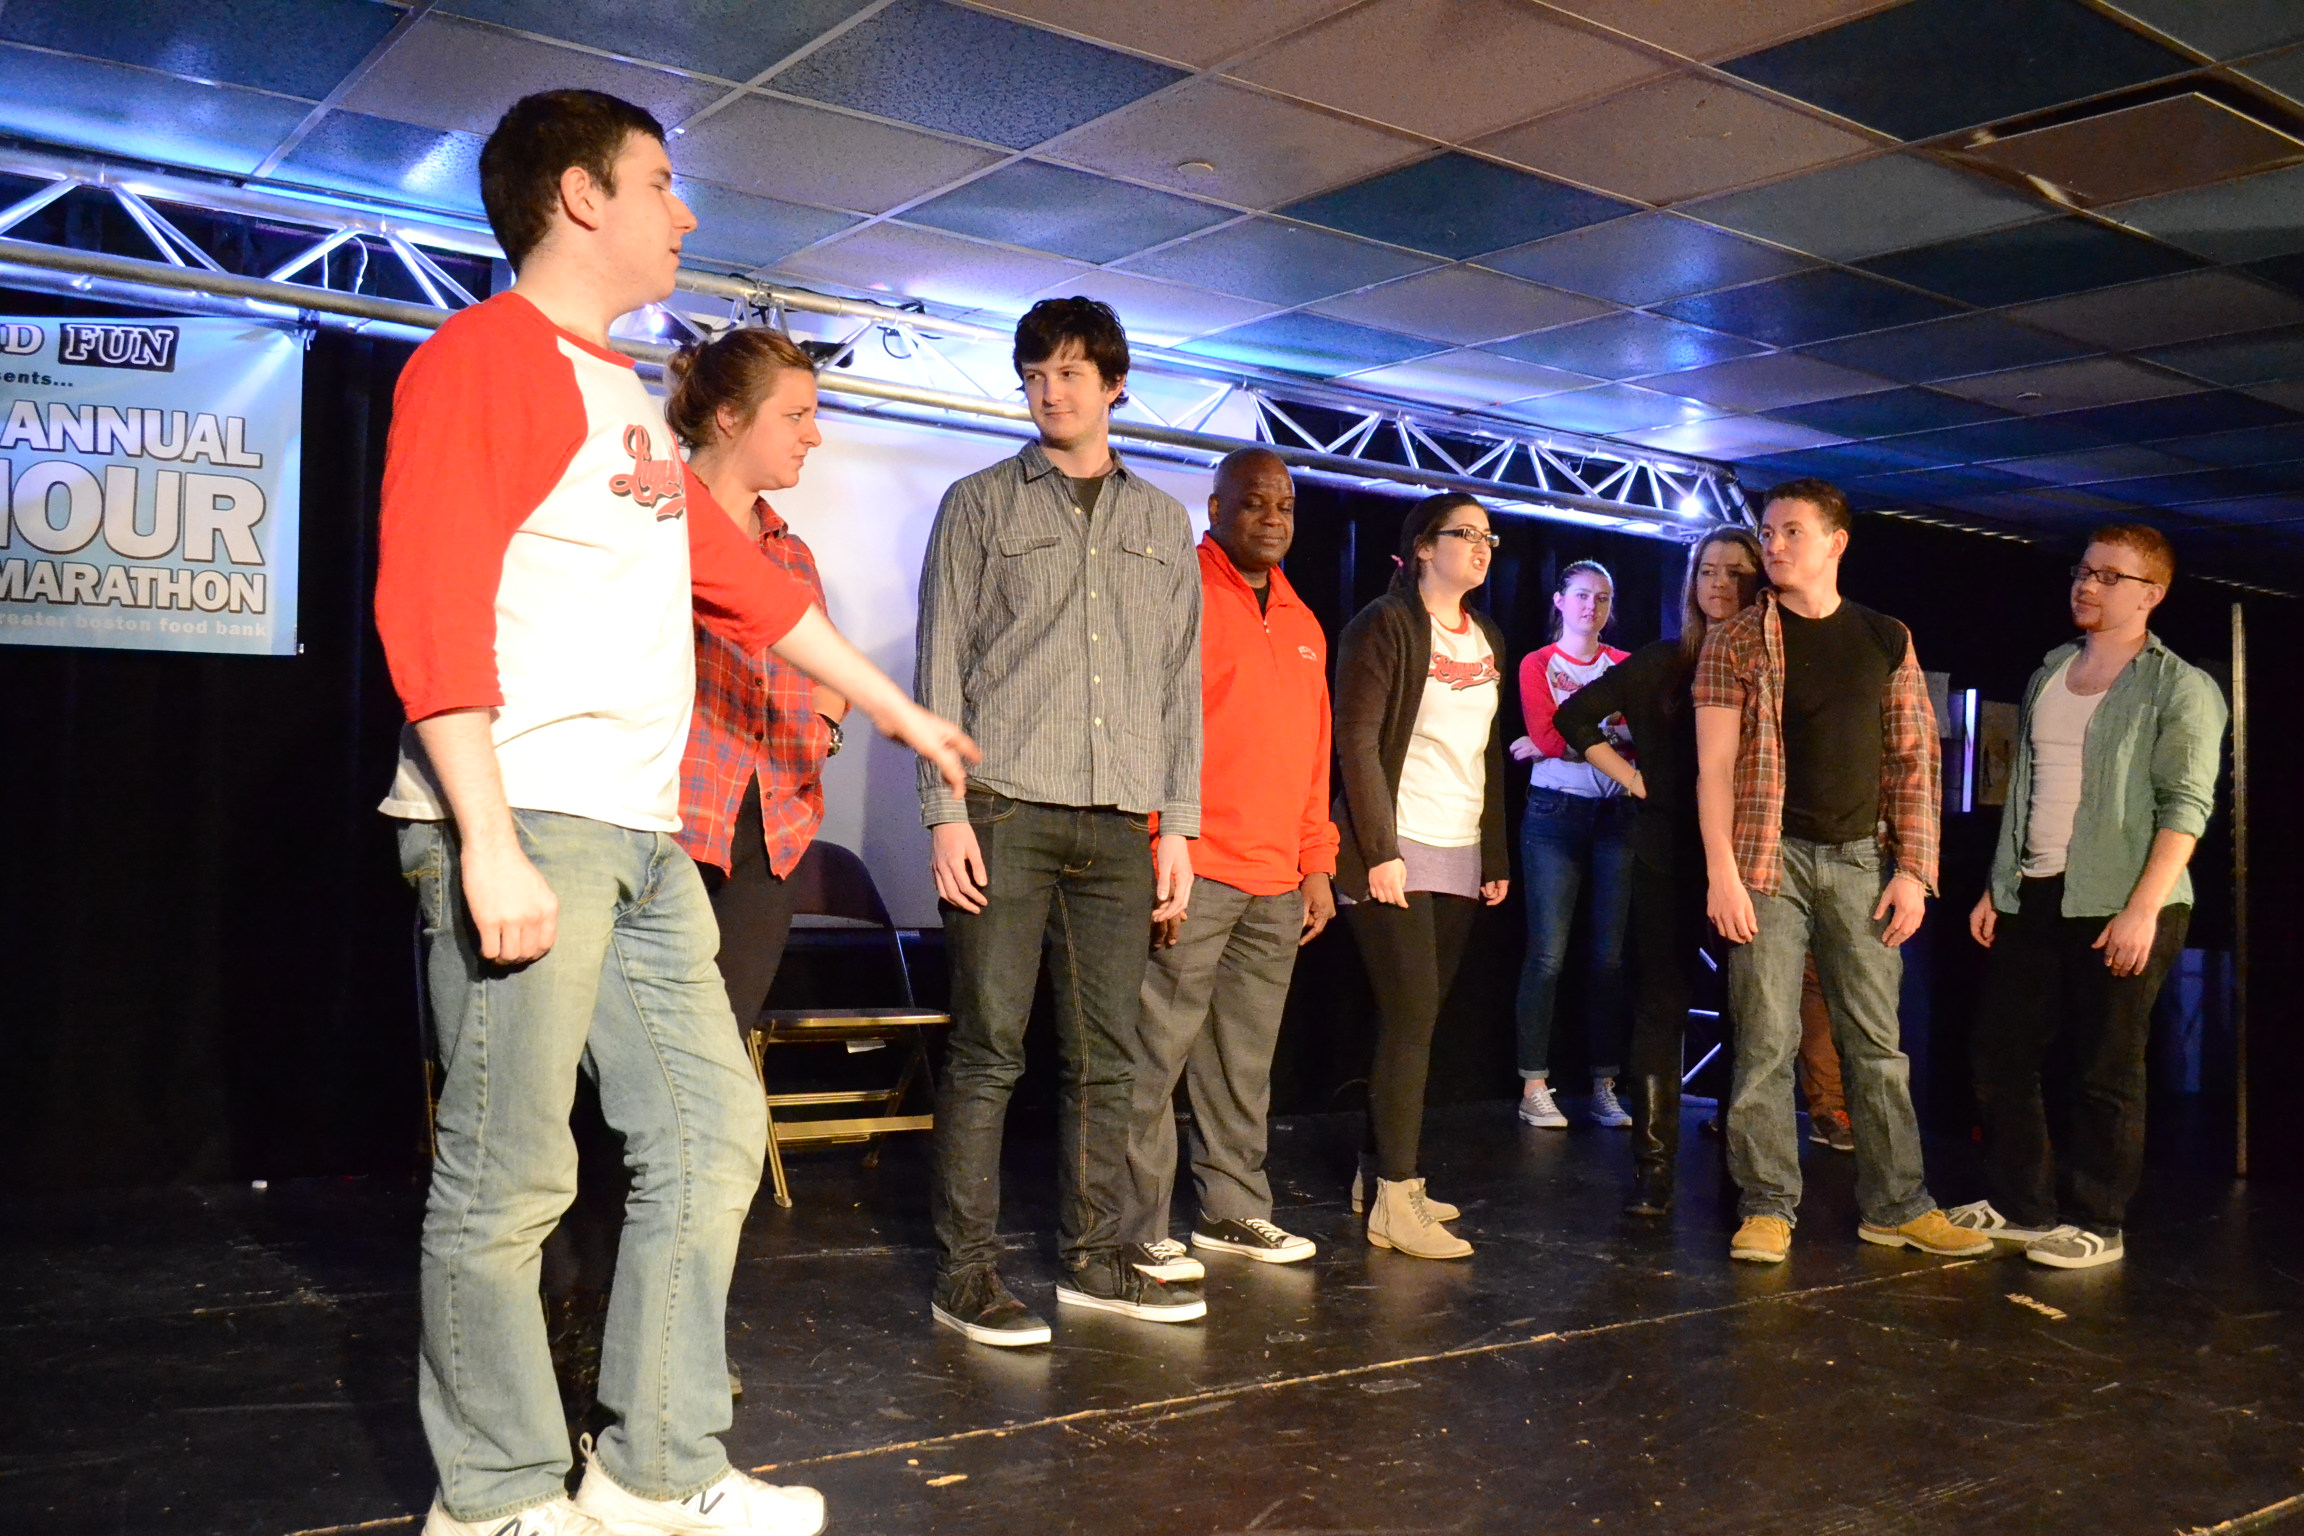 """Dean of Students Kenneth Elmore joined Liquid Fun on stage during the """"Newbie Hour."""" 